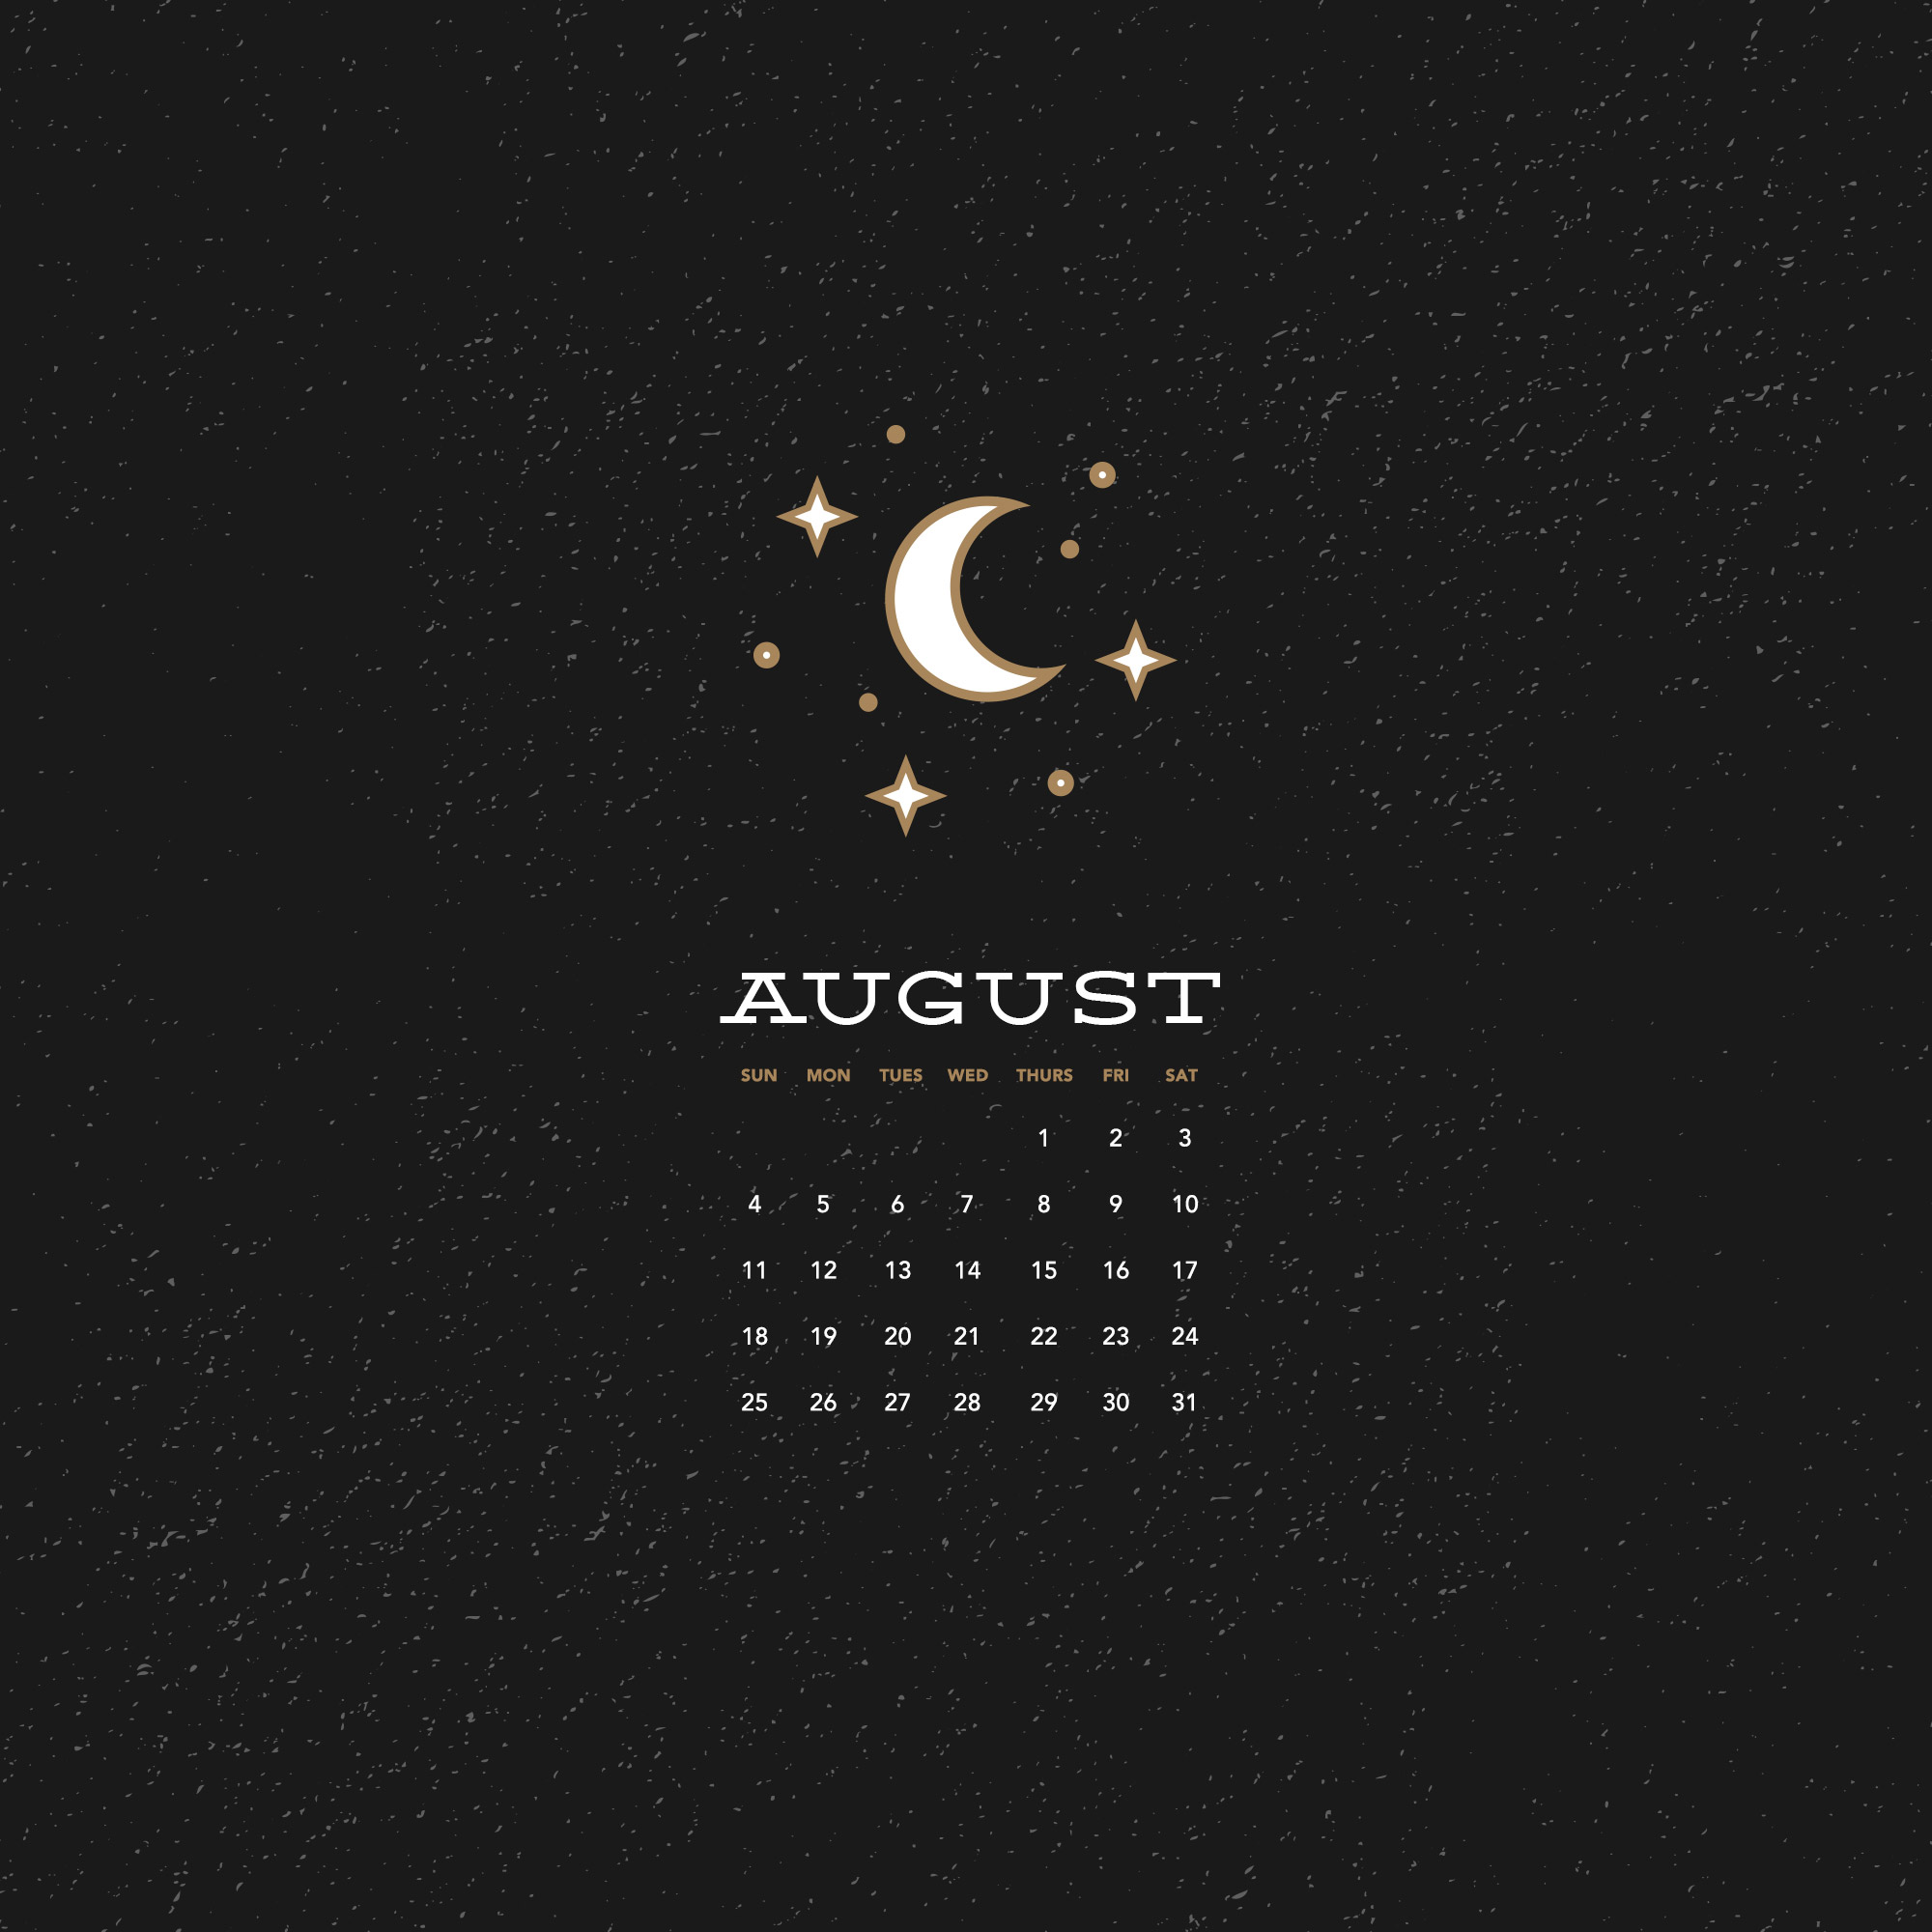 Free Wallpaper for August 2019 with moon and stars